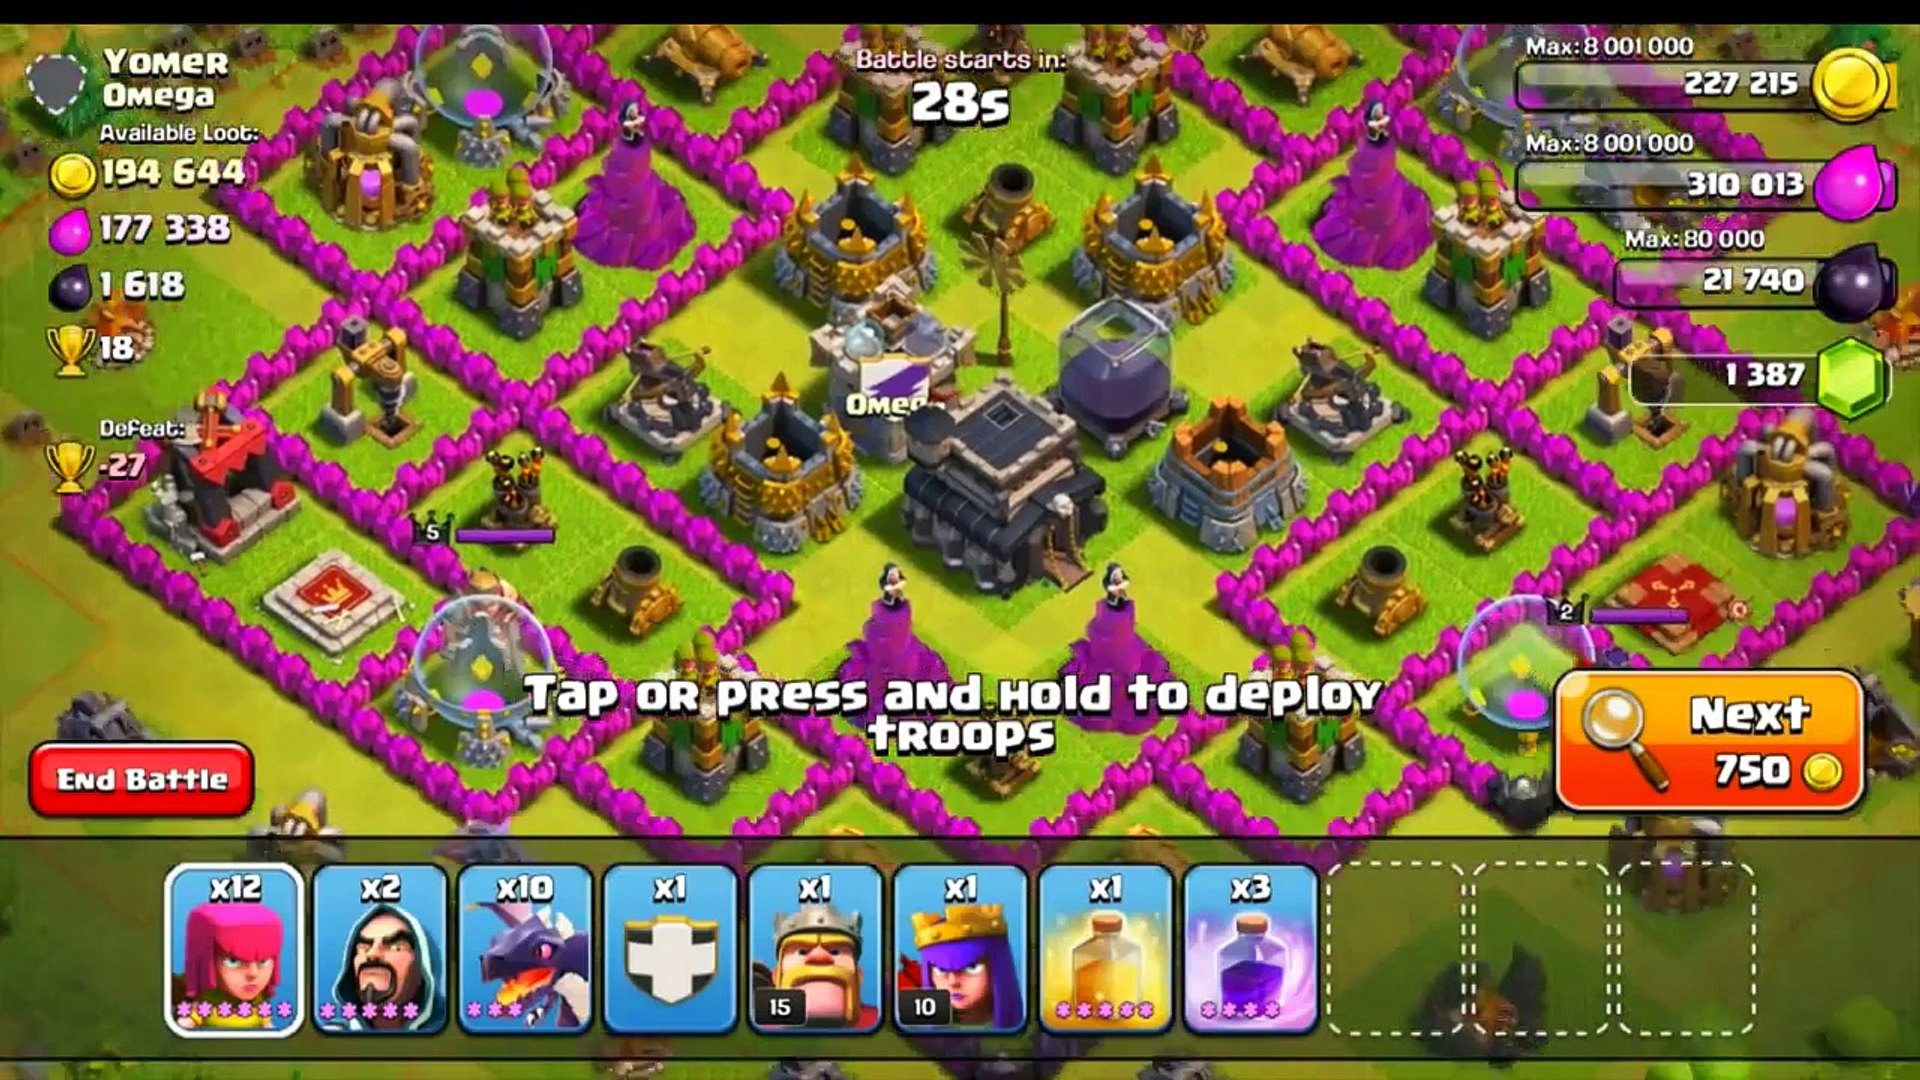 CLASH OF CLANS - HOW TO TRAIN YOUR DRAGON + TH9 DEFENSE REPLAYS